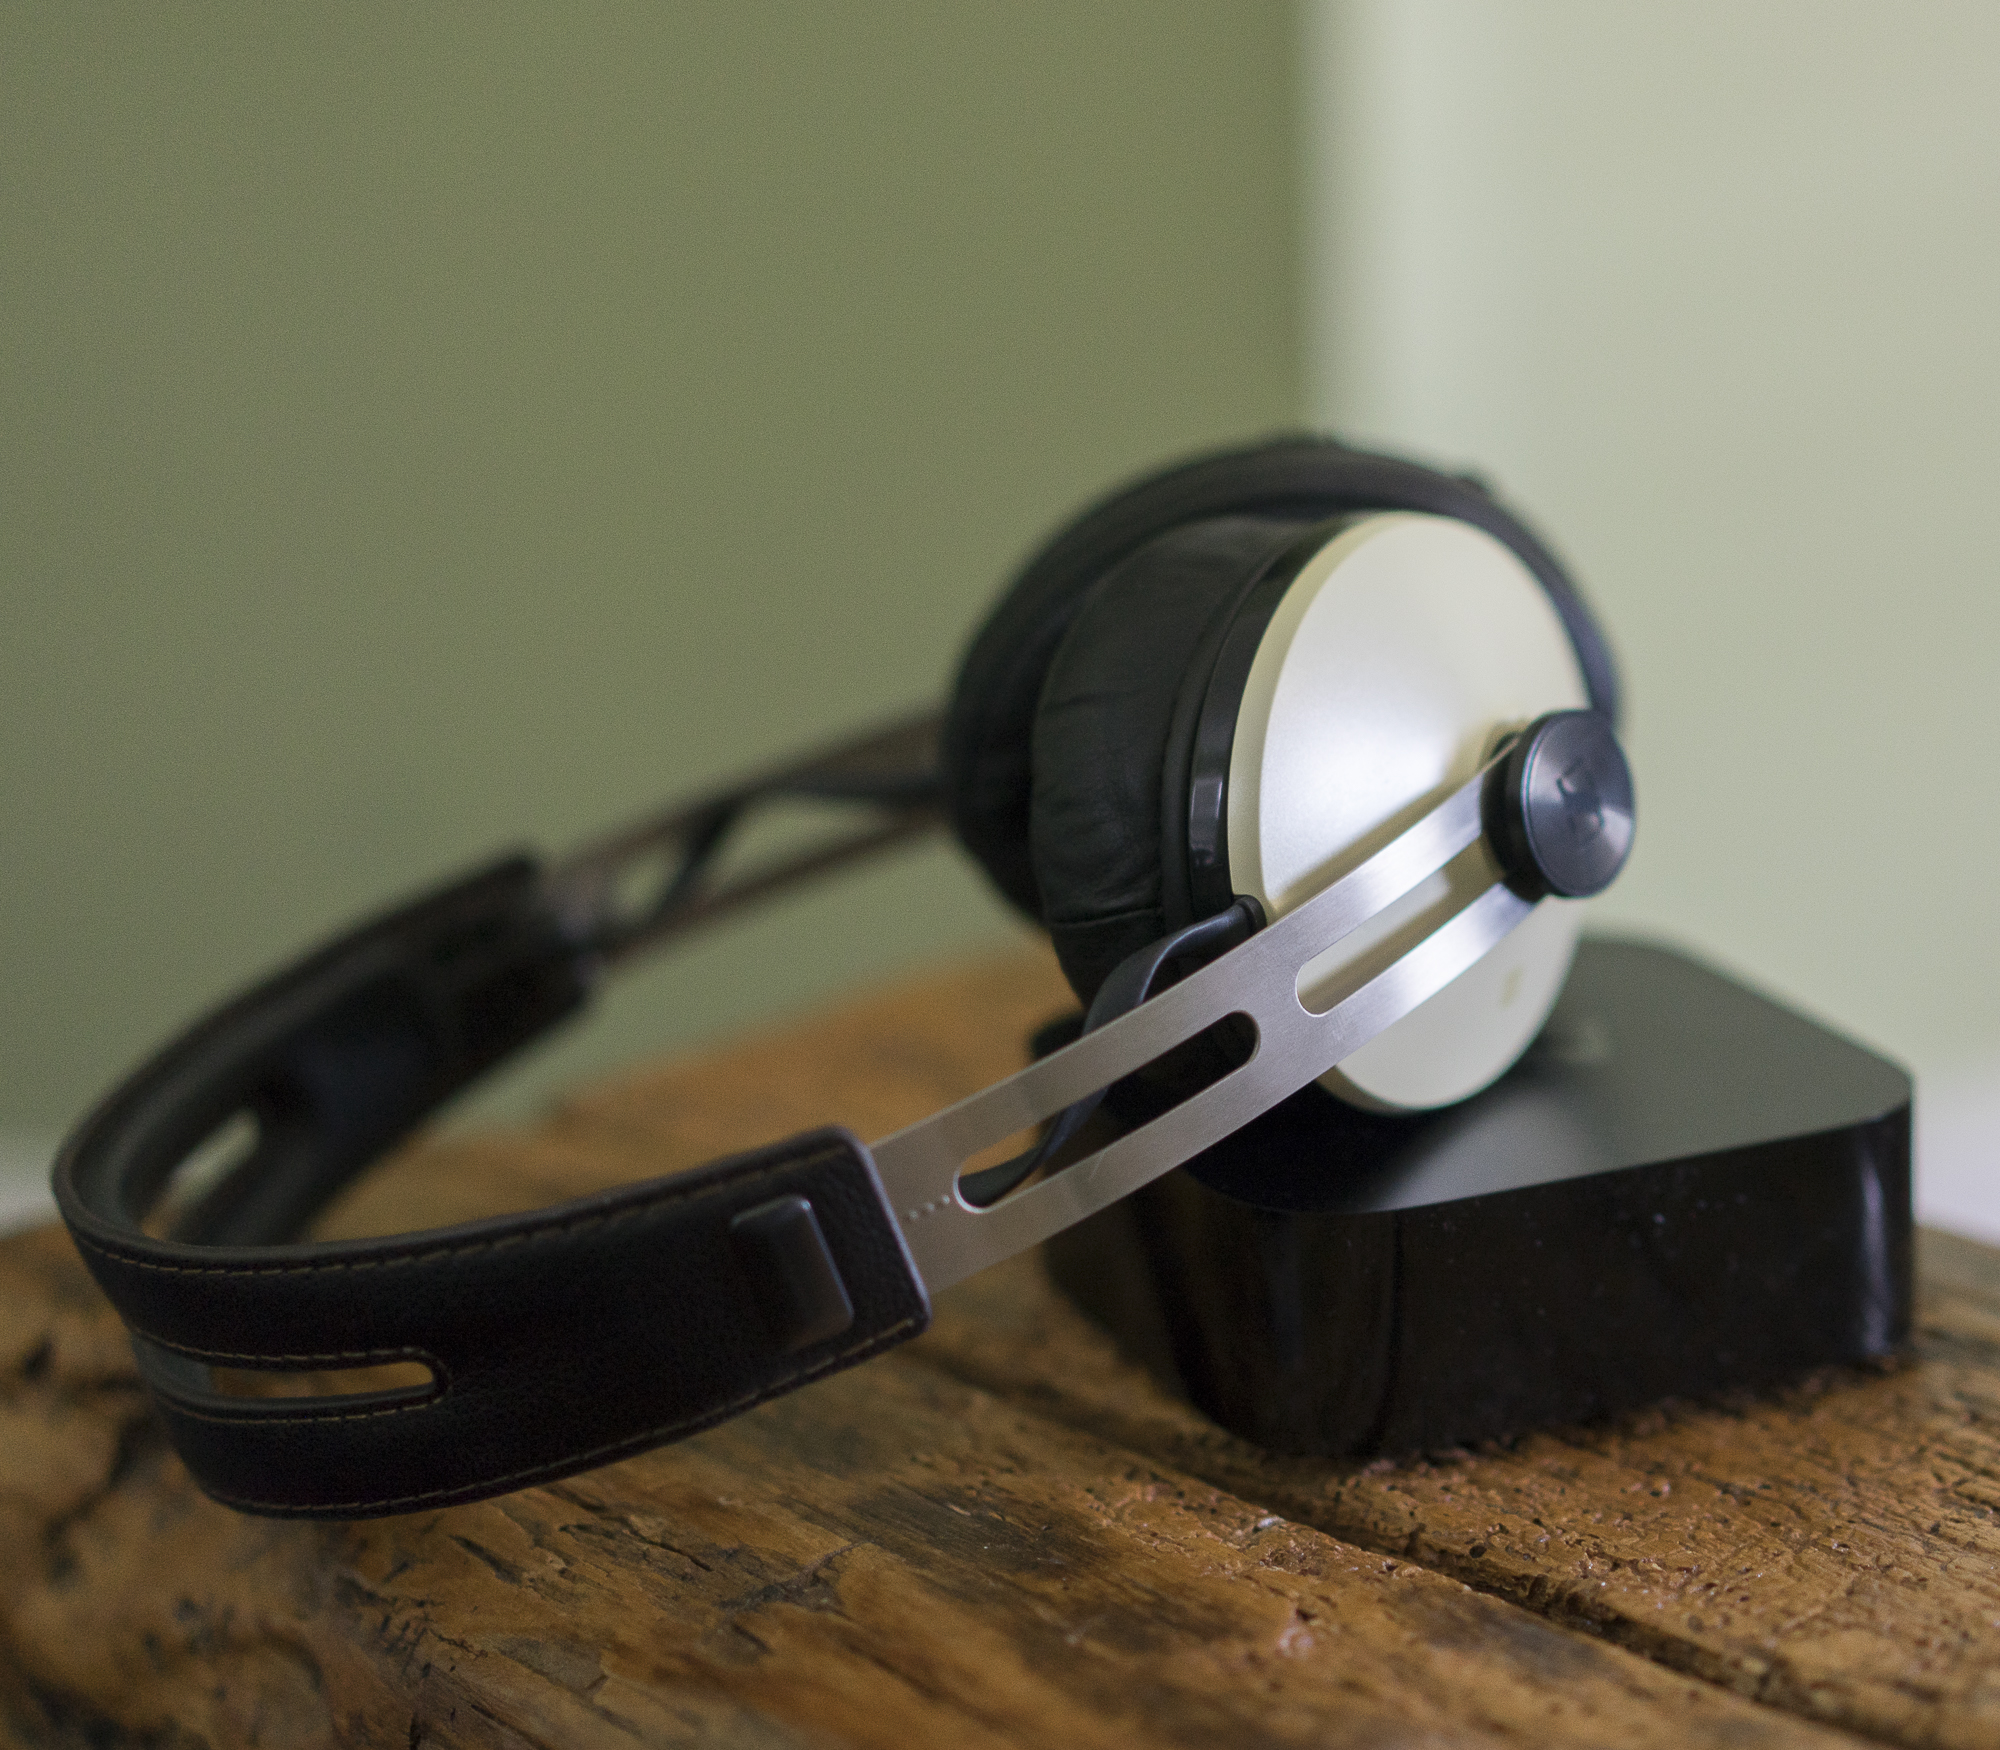 How To Connect Bluetooth Headphones To Apple Tv